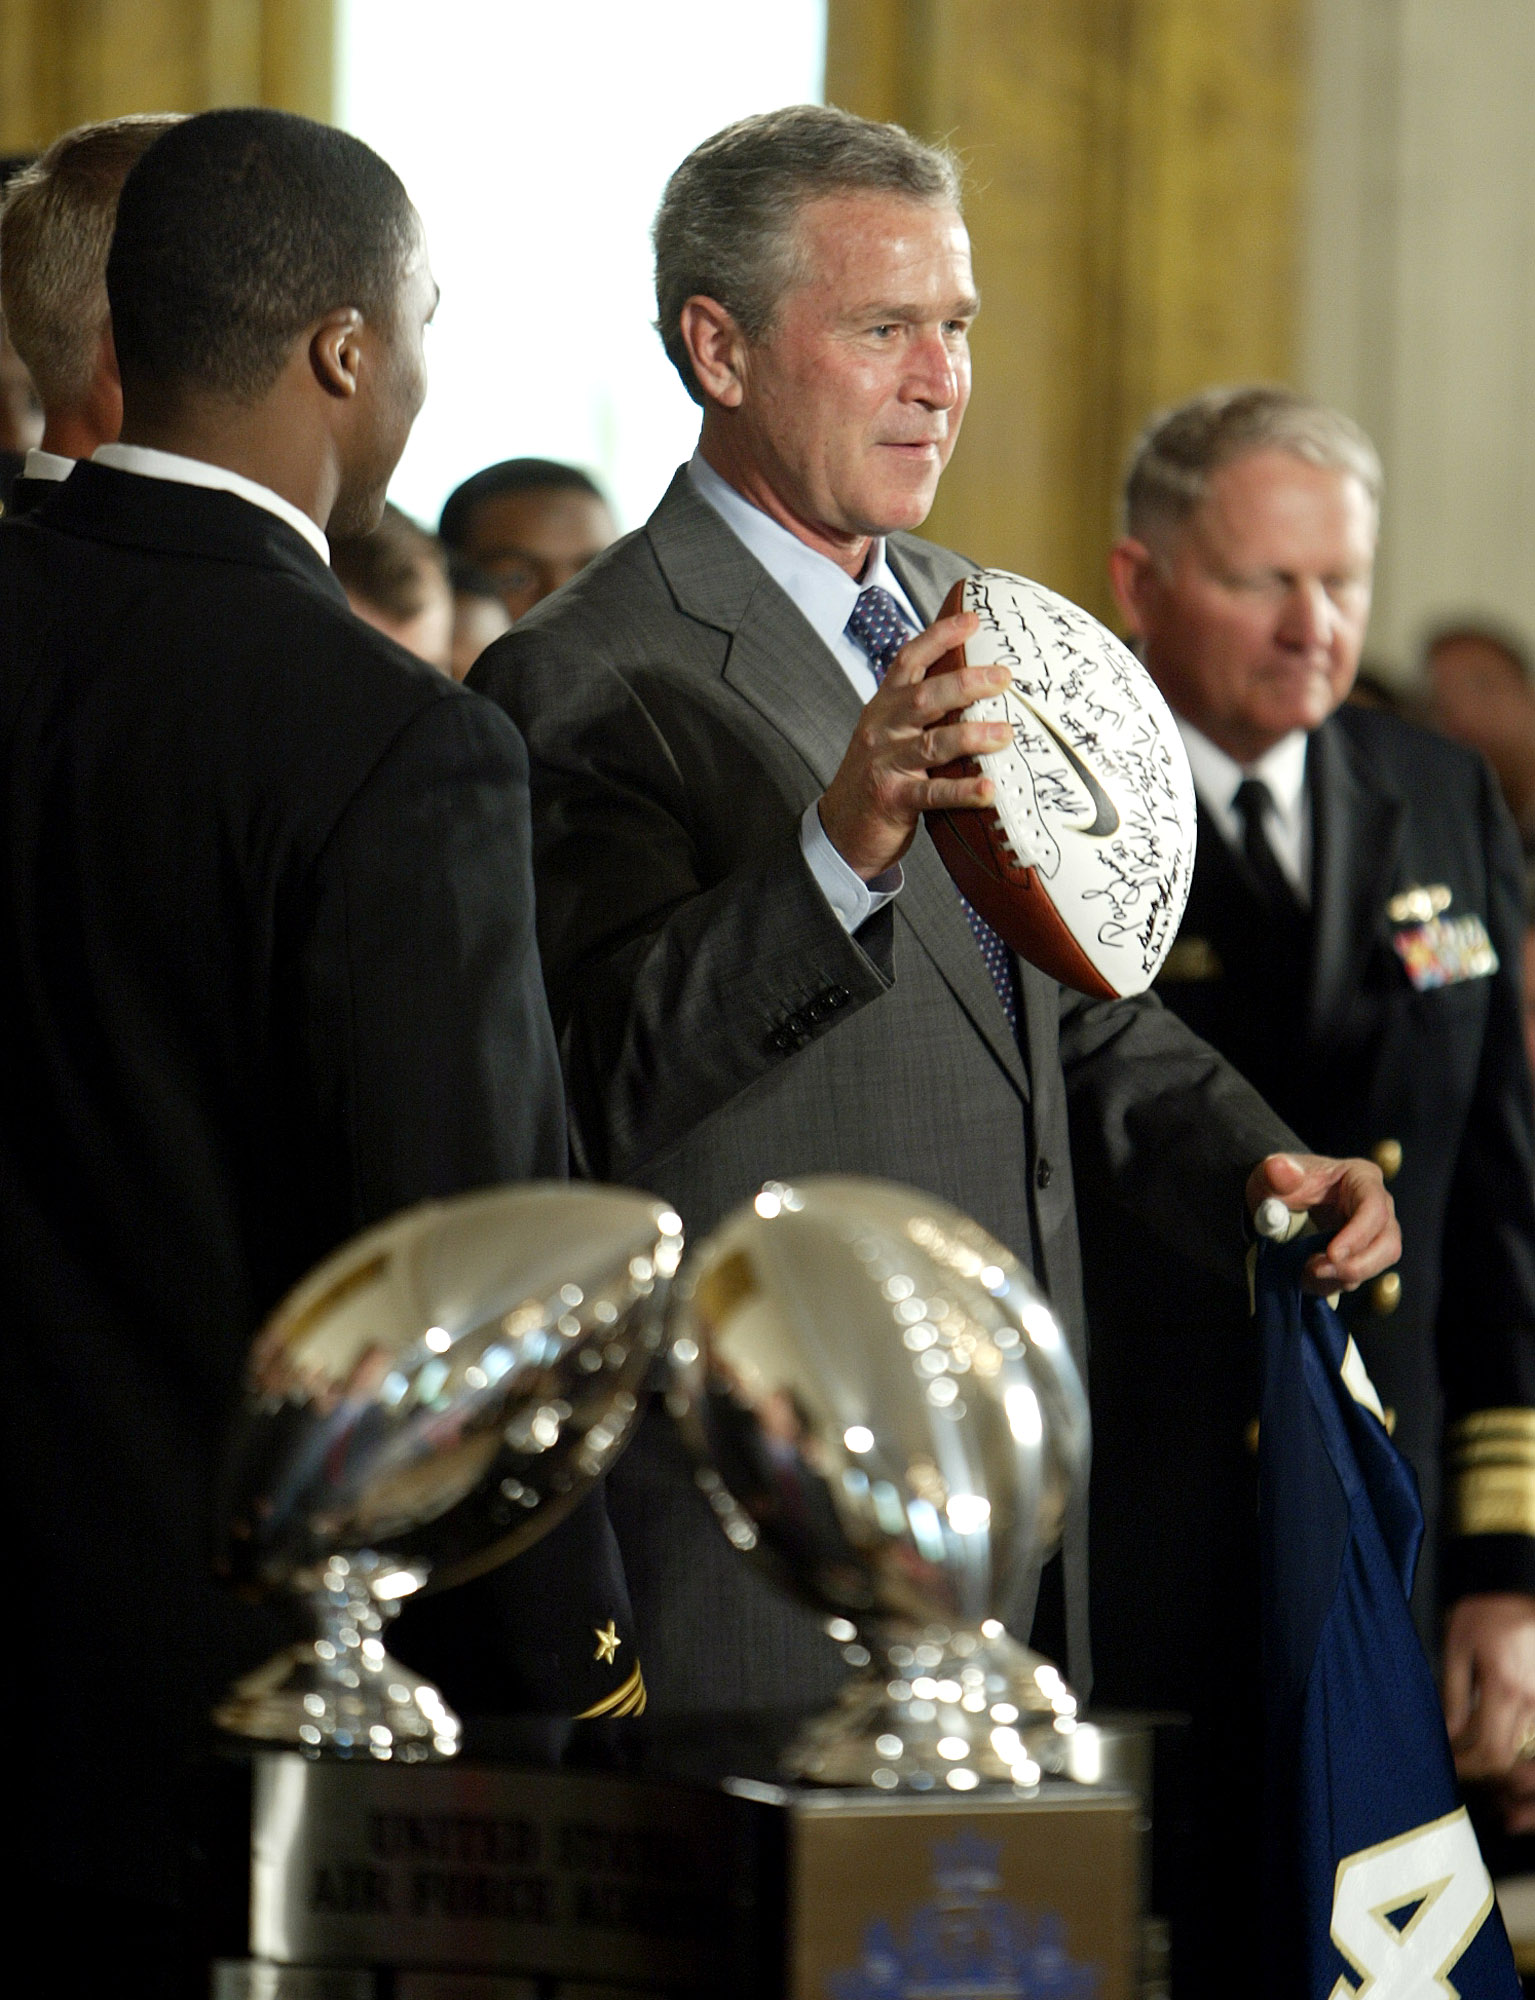 President Bush acts like he is going to throw a football given to him by team members as he participates, Monday, April 19, 2004, in a presentation of the Commander-in-Chief's Trophy to the United States Naval Academy football team in the East Room of the White House. Other are indentified. (AP Photo/Ron Edmonds)